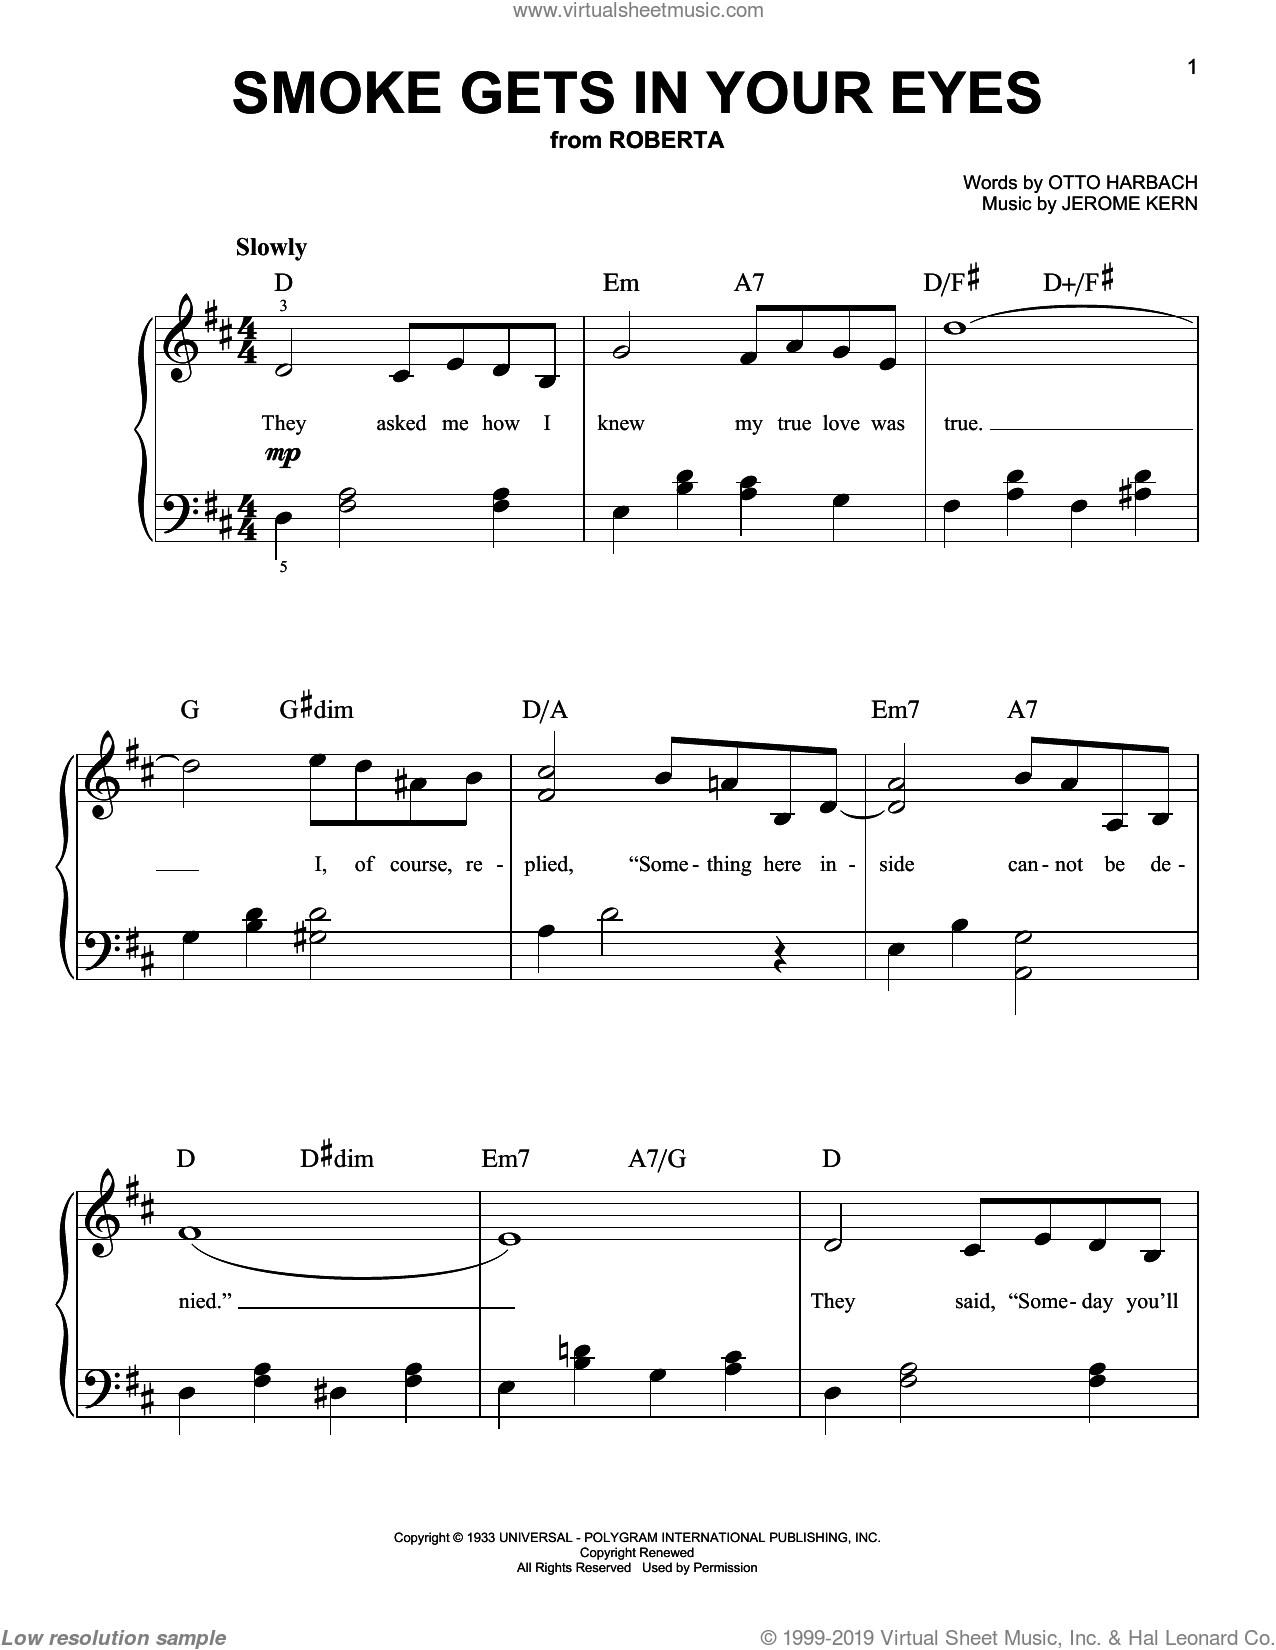 Smoke Gets In Your Eyes sheet music for piano solo by Jerome Kern, The Platters and Otto Harbach, easy skill level